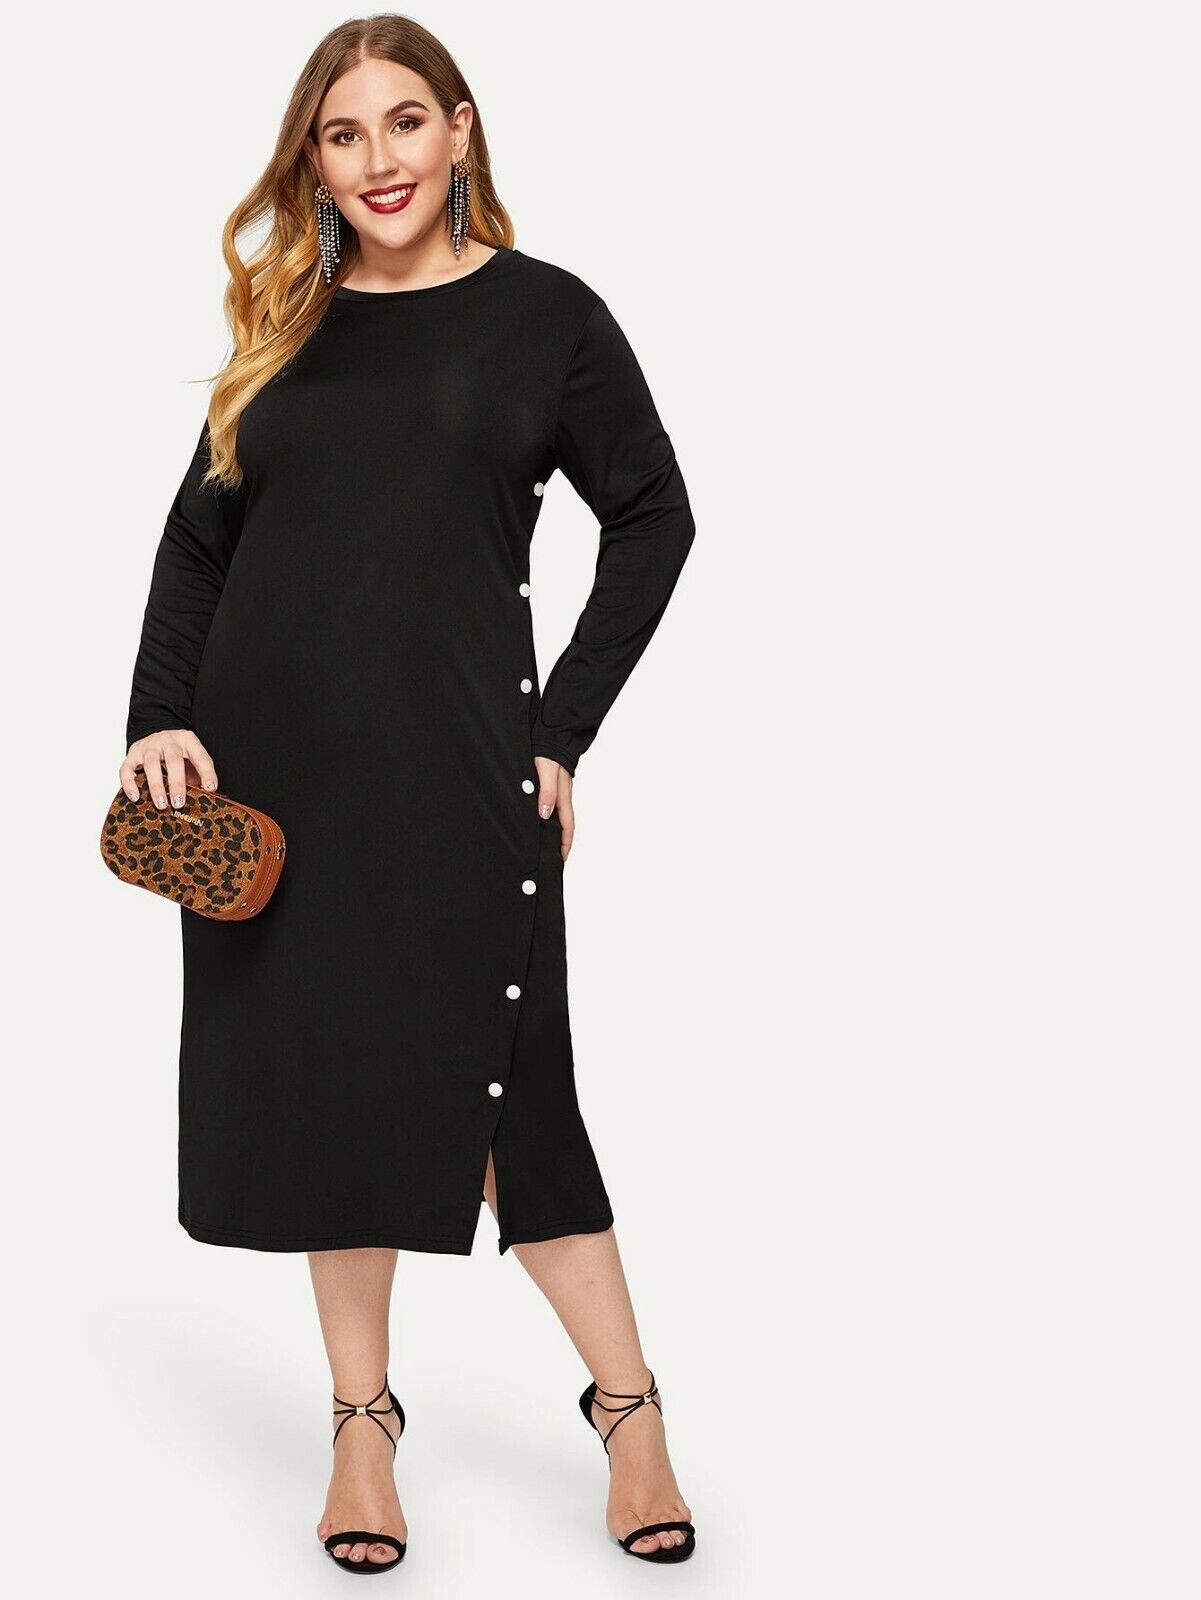 Solid Black Midi Dress with White Button Accents size 3